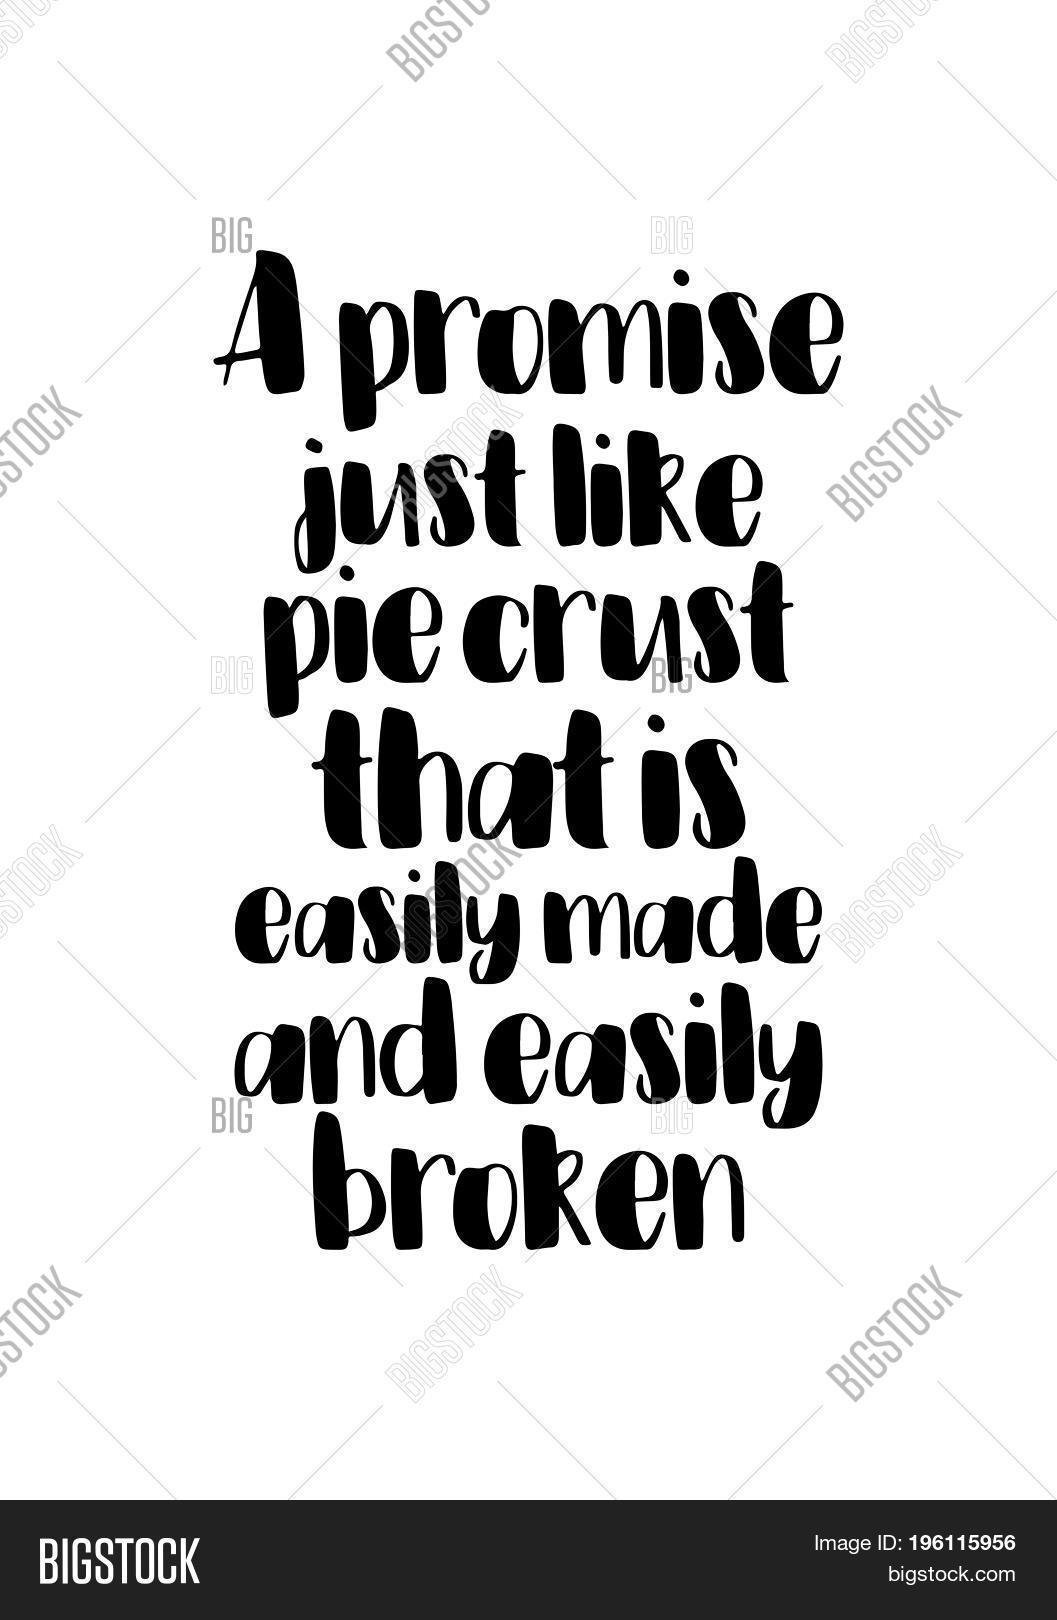 made to be broken just like pie crusts